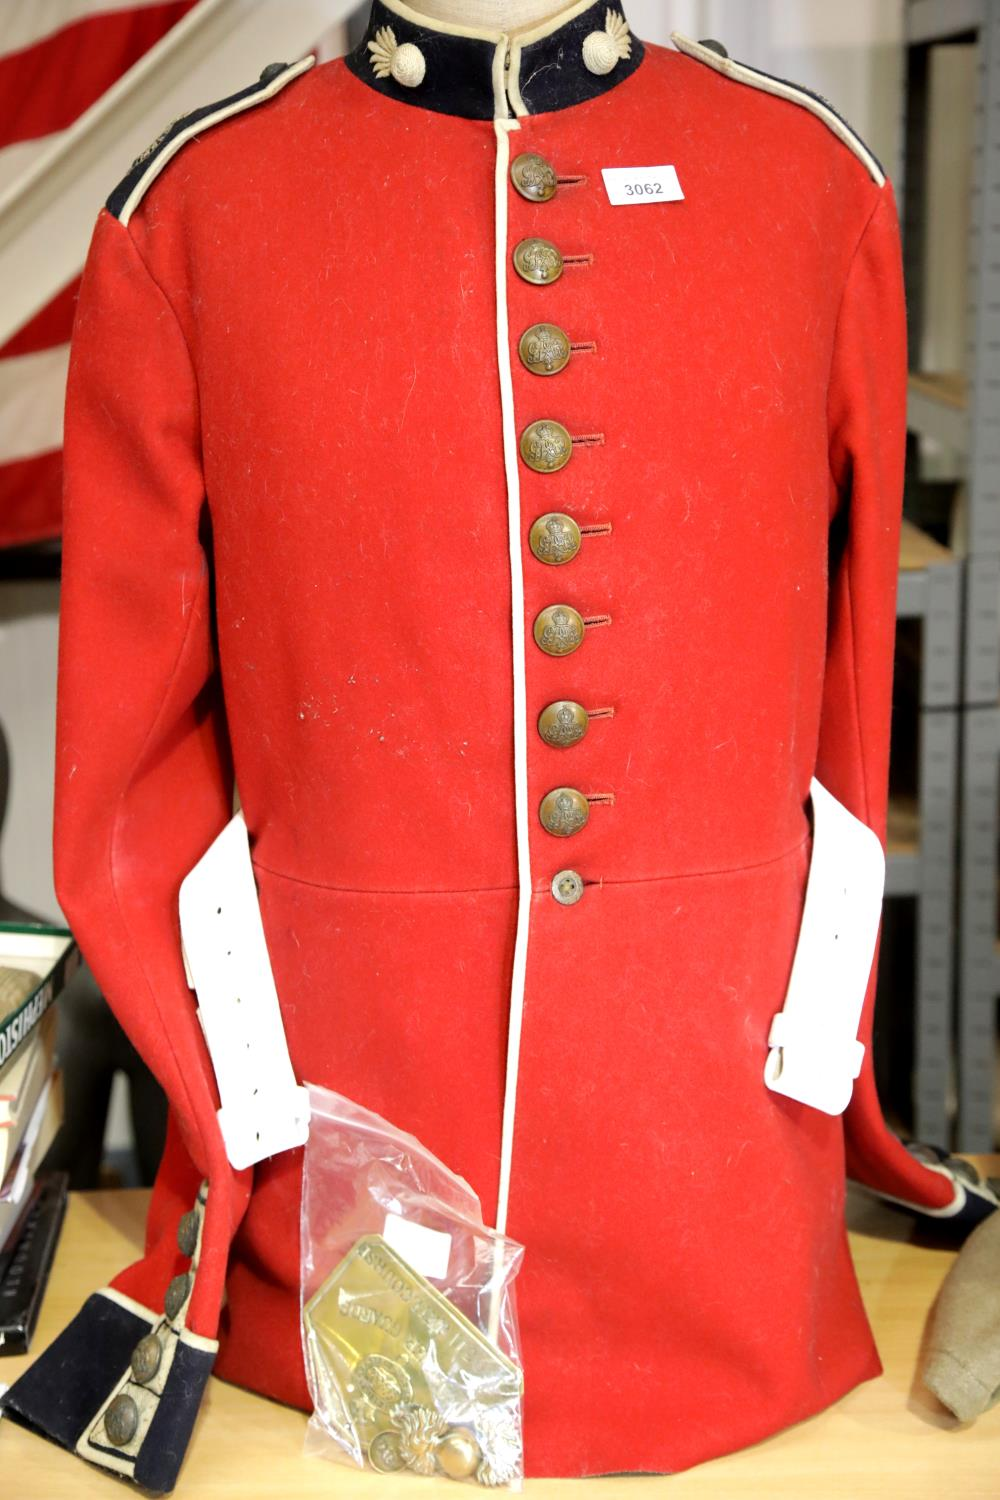 George V Grenadier Guards dress tunic with white belt lacking buckle, additional brass badges and